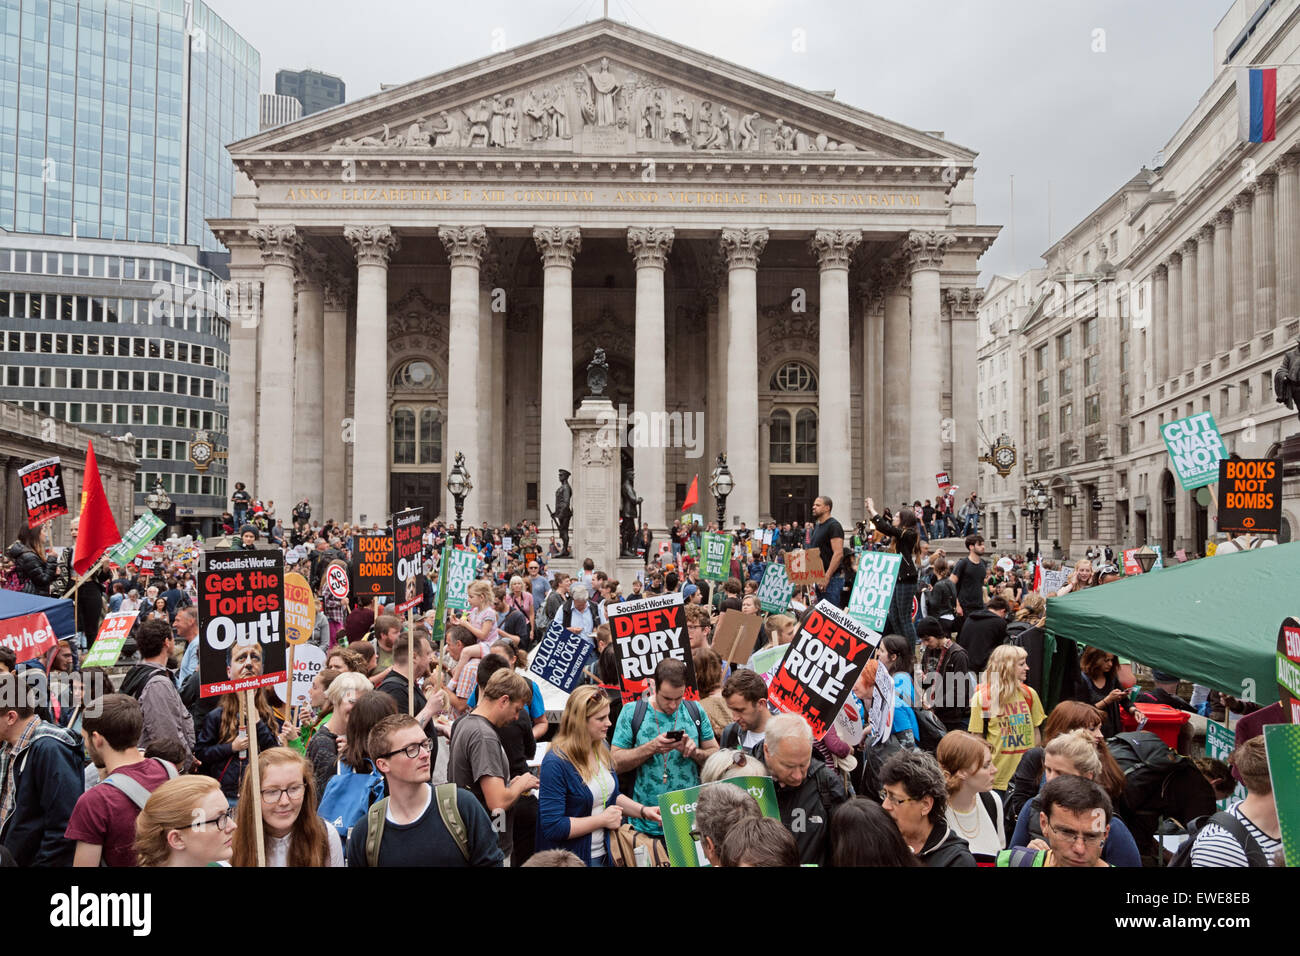 Anti austerity march in London City, June 2015, outside the Bank of England. - Stock Image